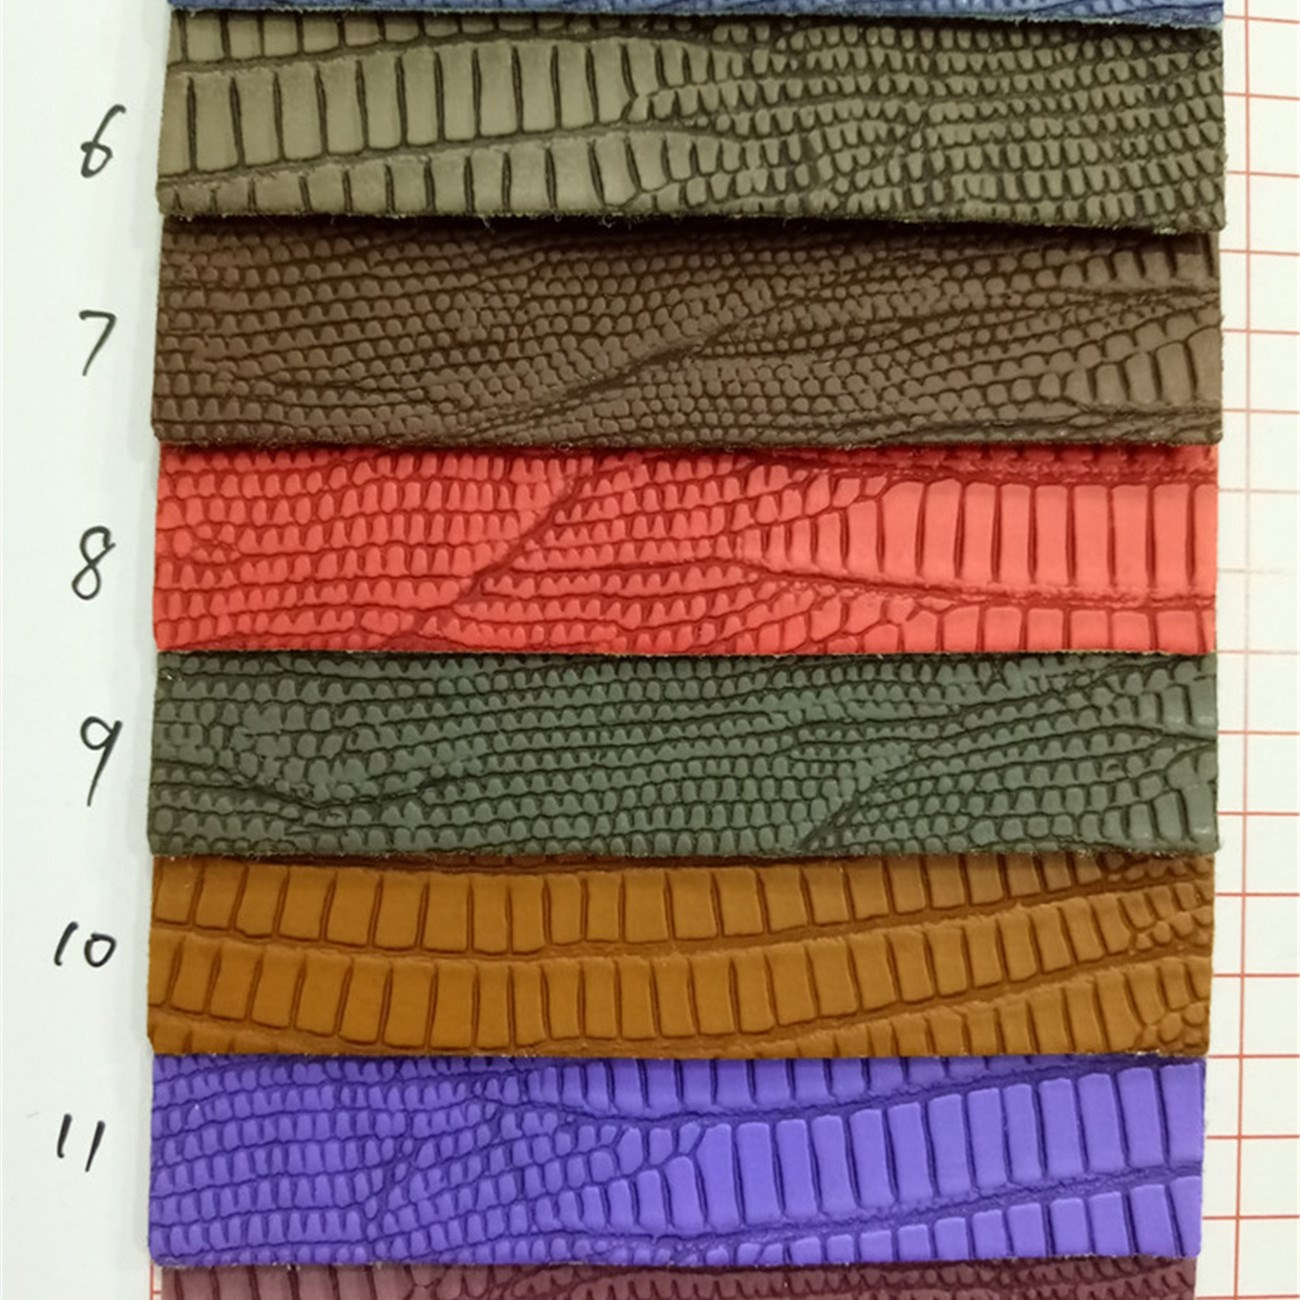 Lizard PVC vinyl fabric YX861for wallet bag shoes and upholstery